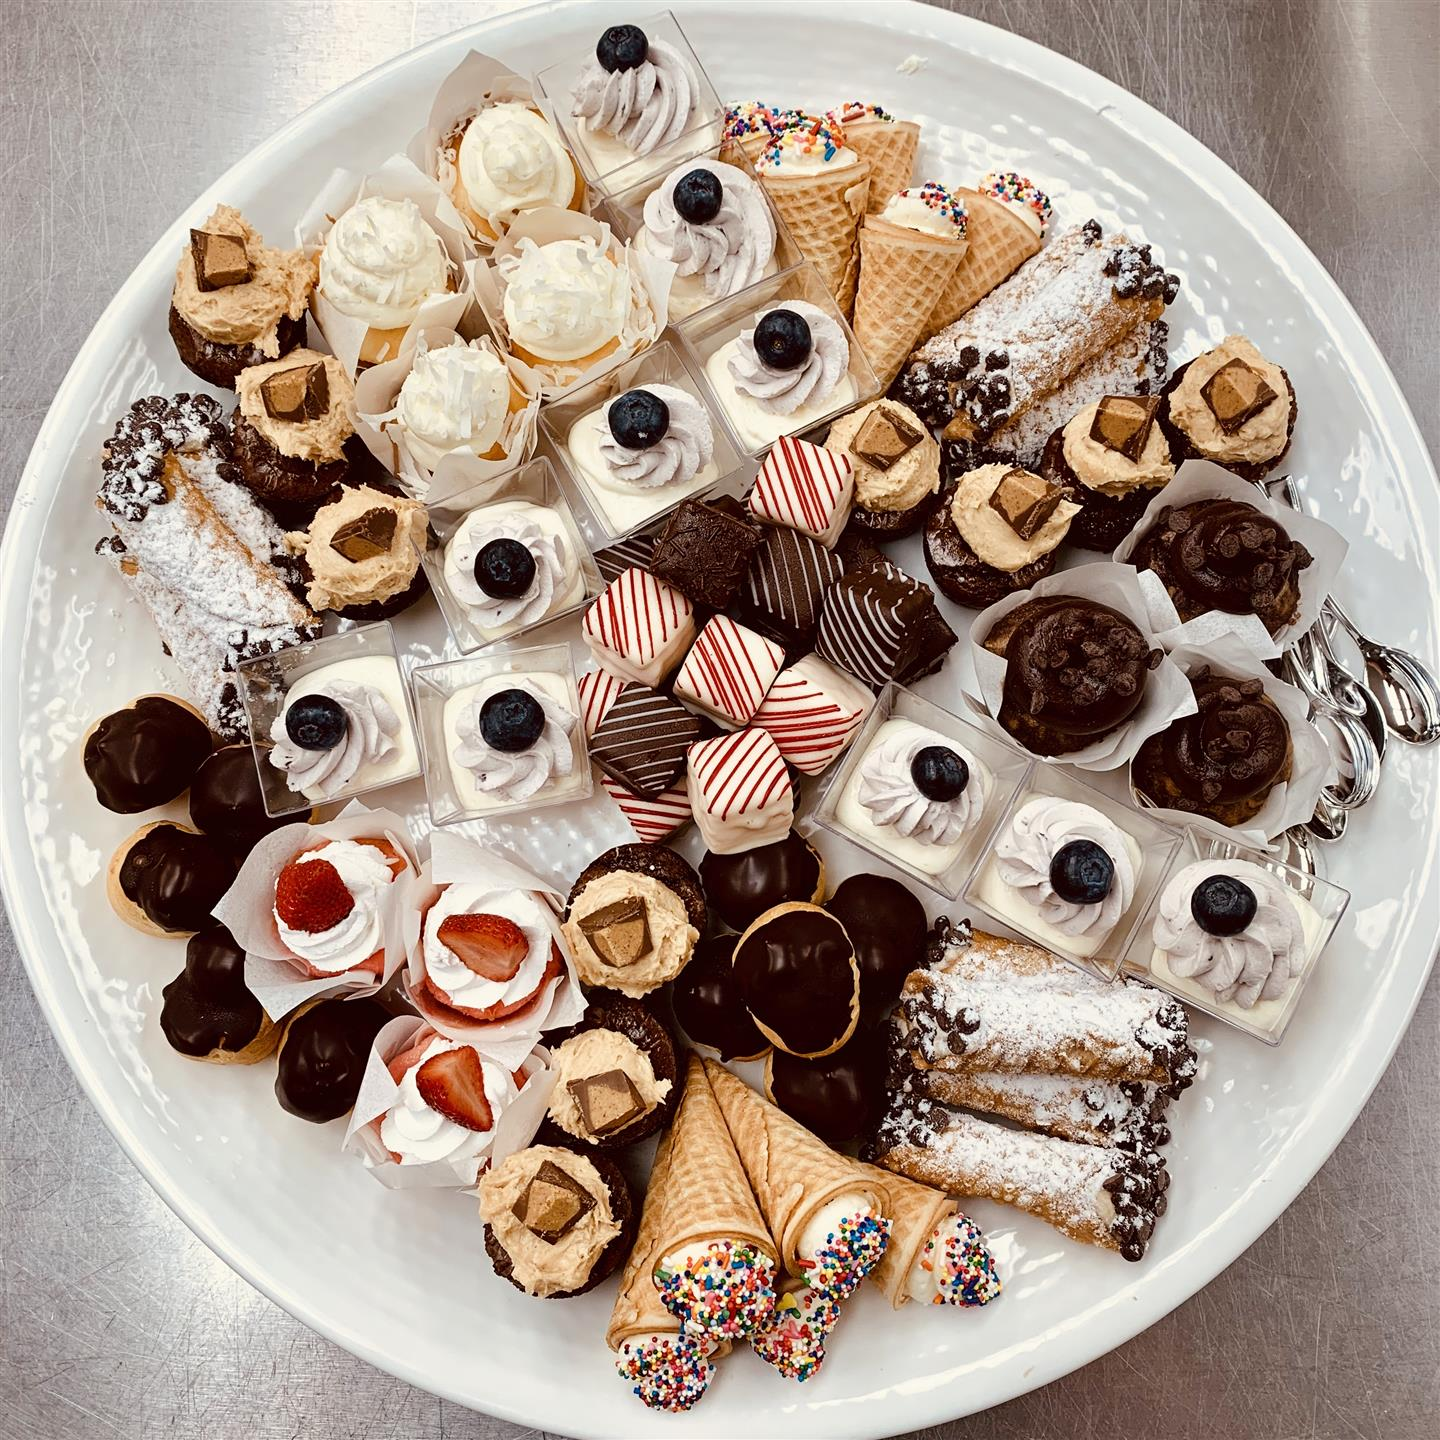 various desserts displayed on a tray including cupcakes, cannolis, and icecream cones